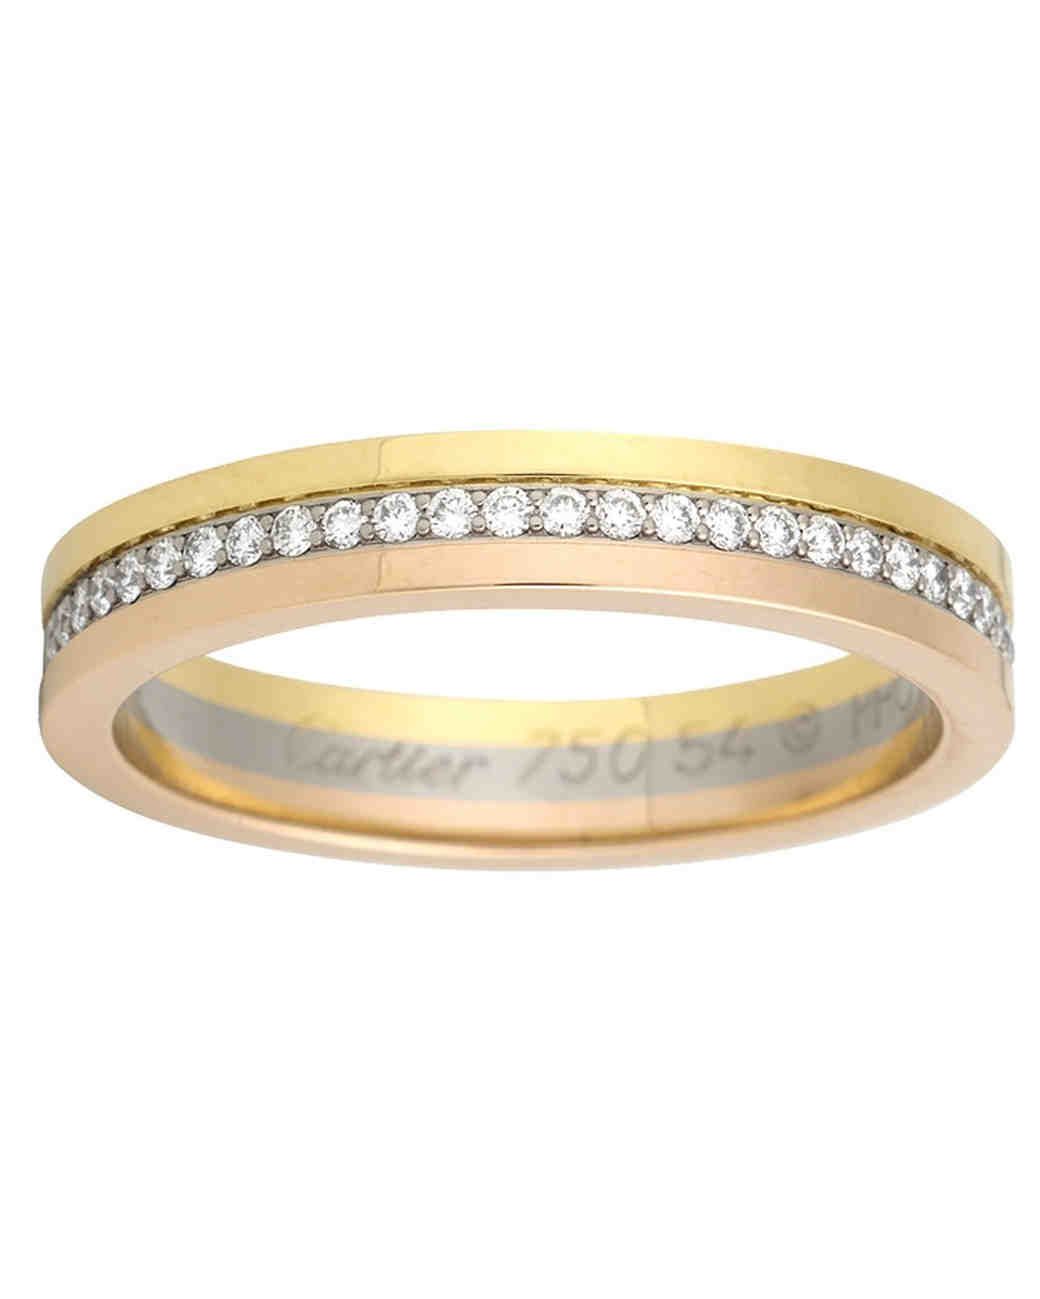 eternity-bands-mixed-metal-cartier-0515.jpg